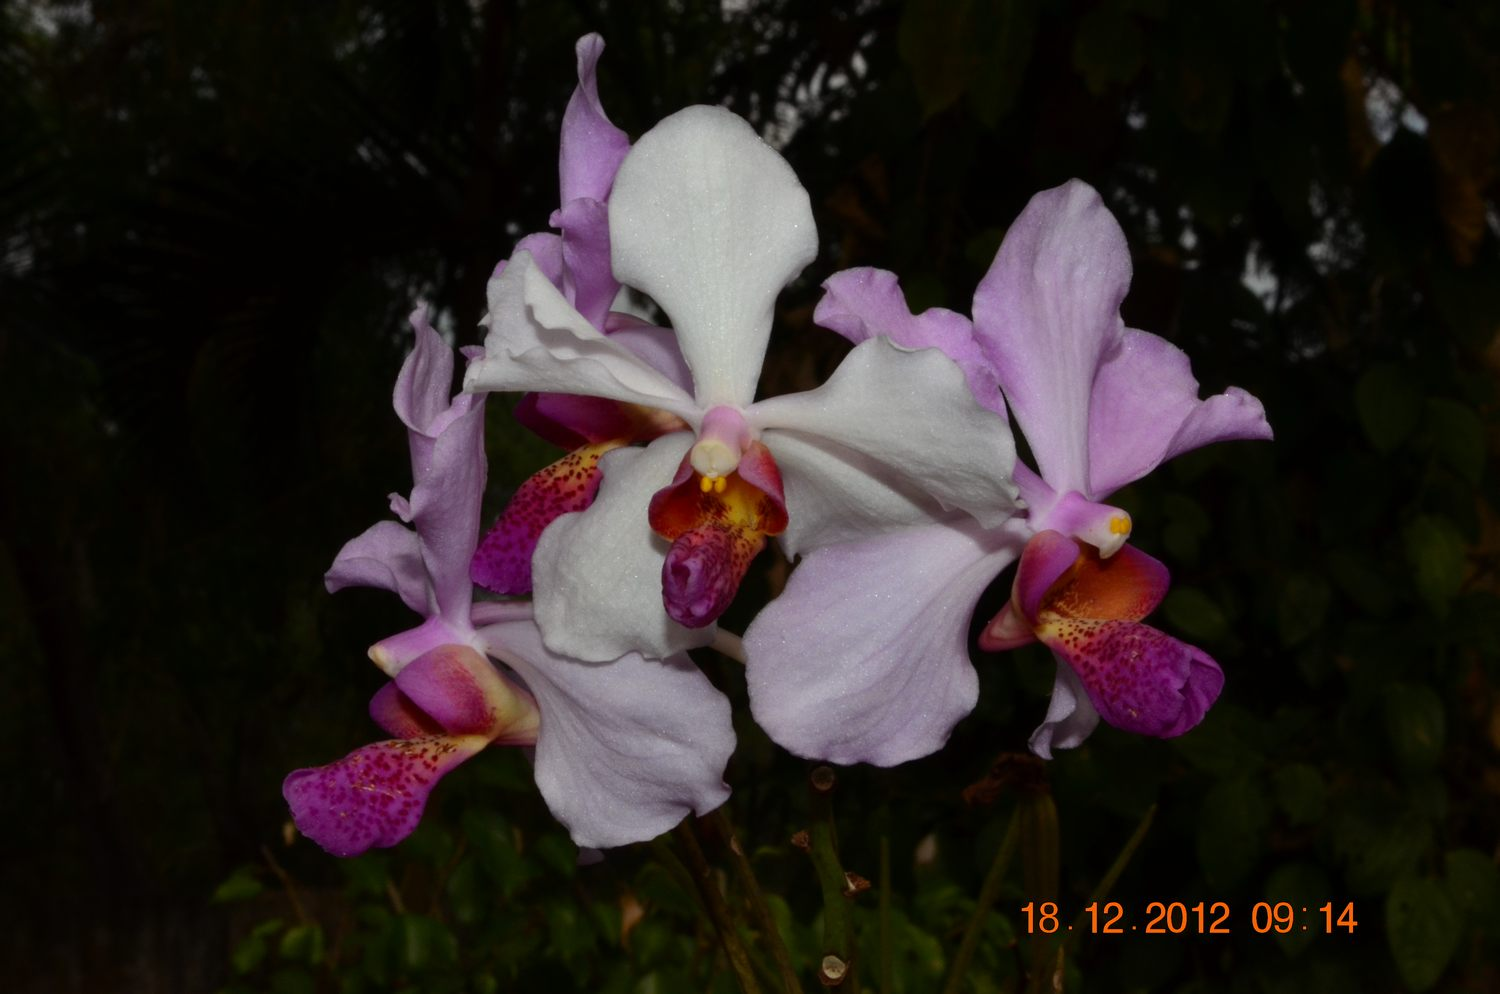 /wp-content/uploads/2020/10/Orchid%20CBG%20-6-.JPG